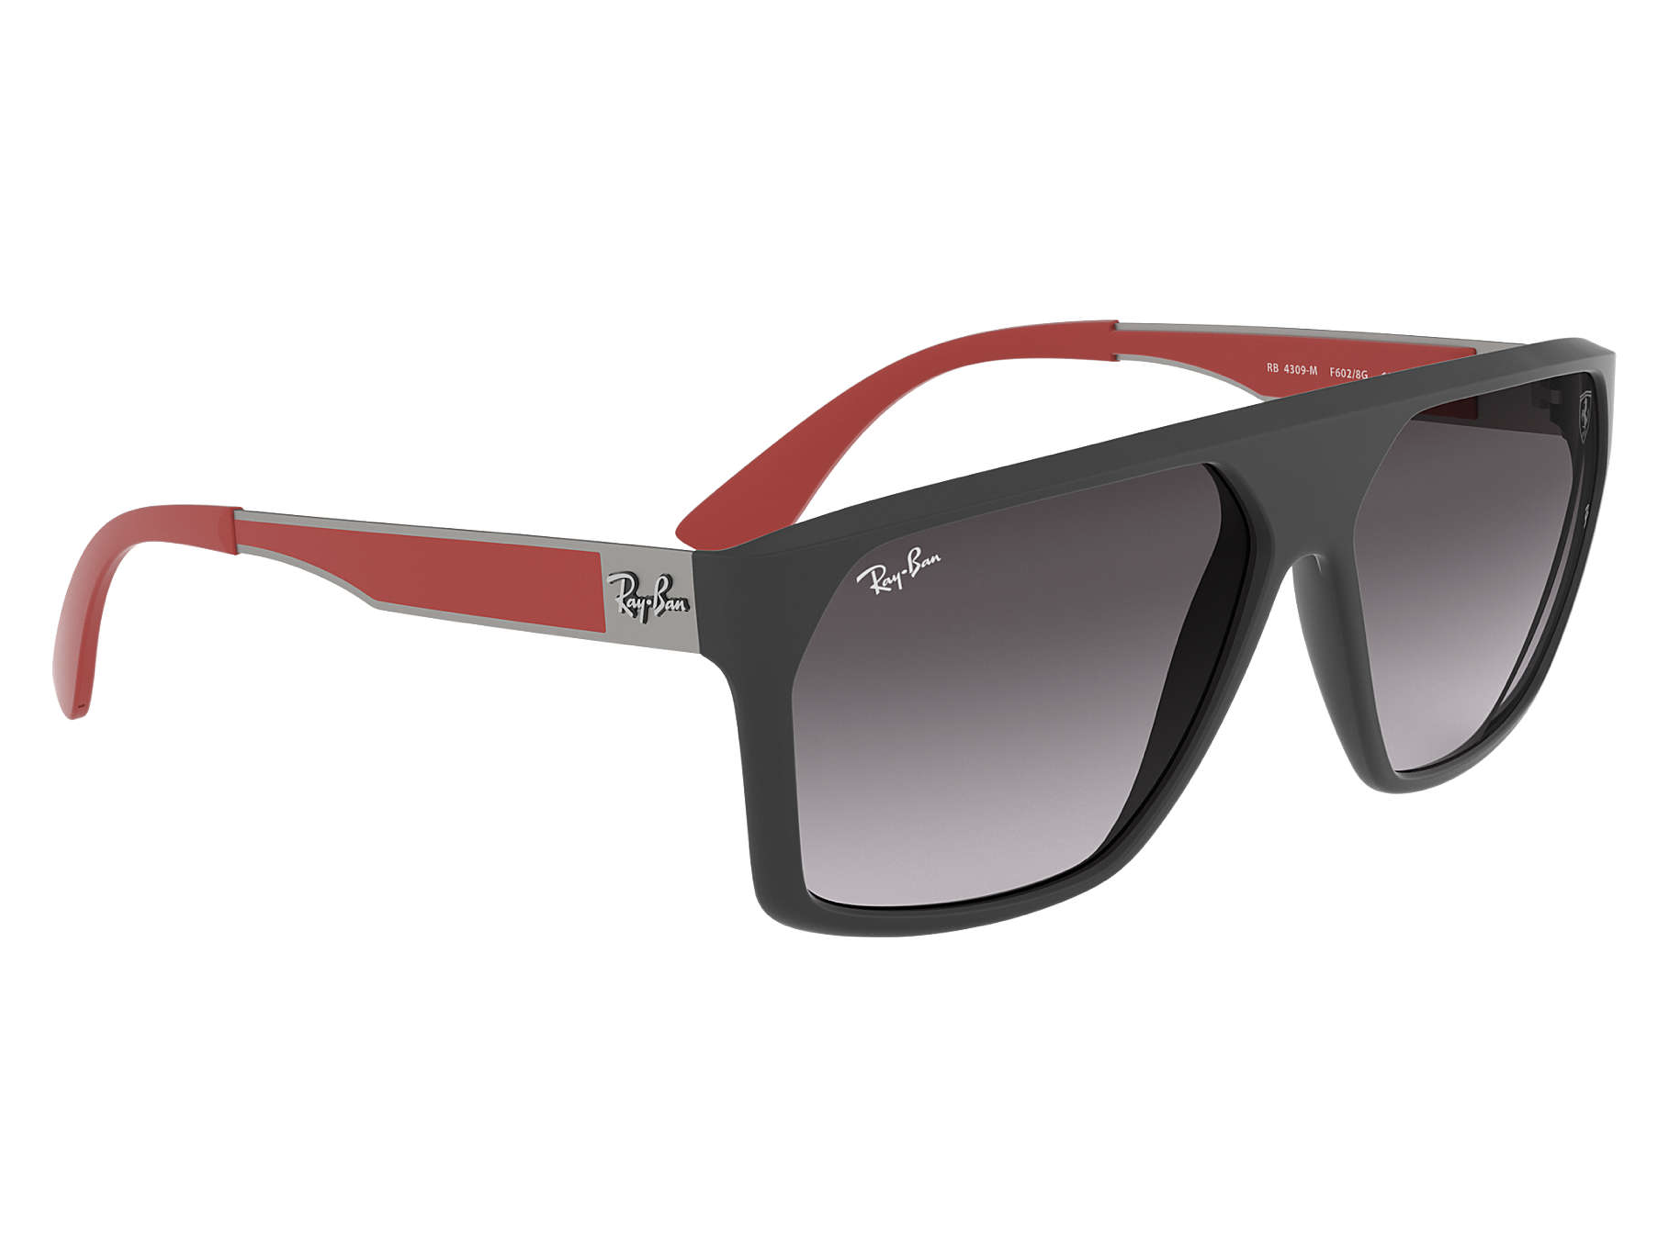 53ff0519d0 Scuderia Ferrari Spain Limited Edition by Ray-Ban - Choice Gear